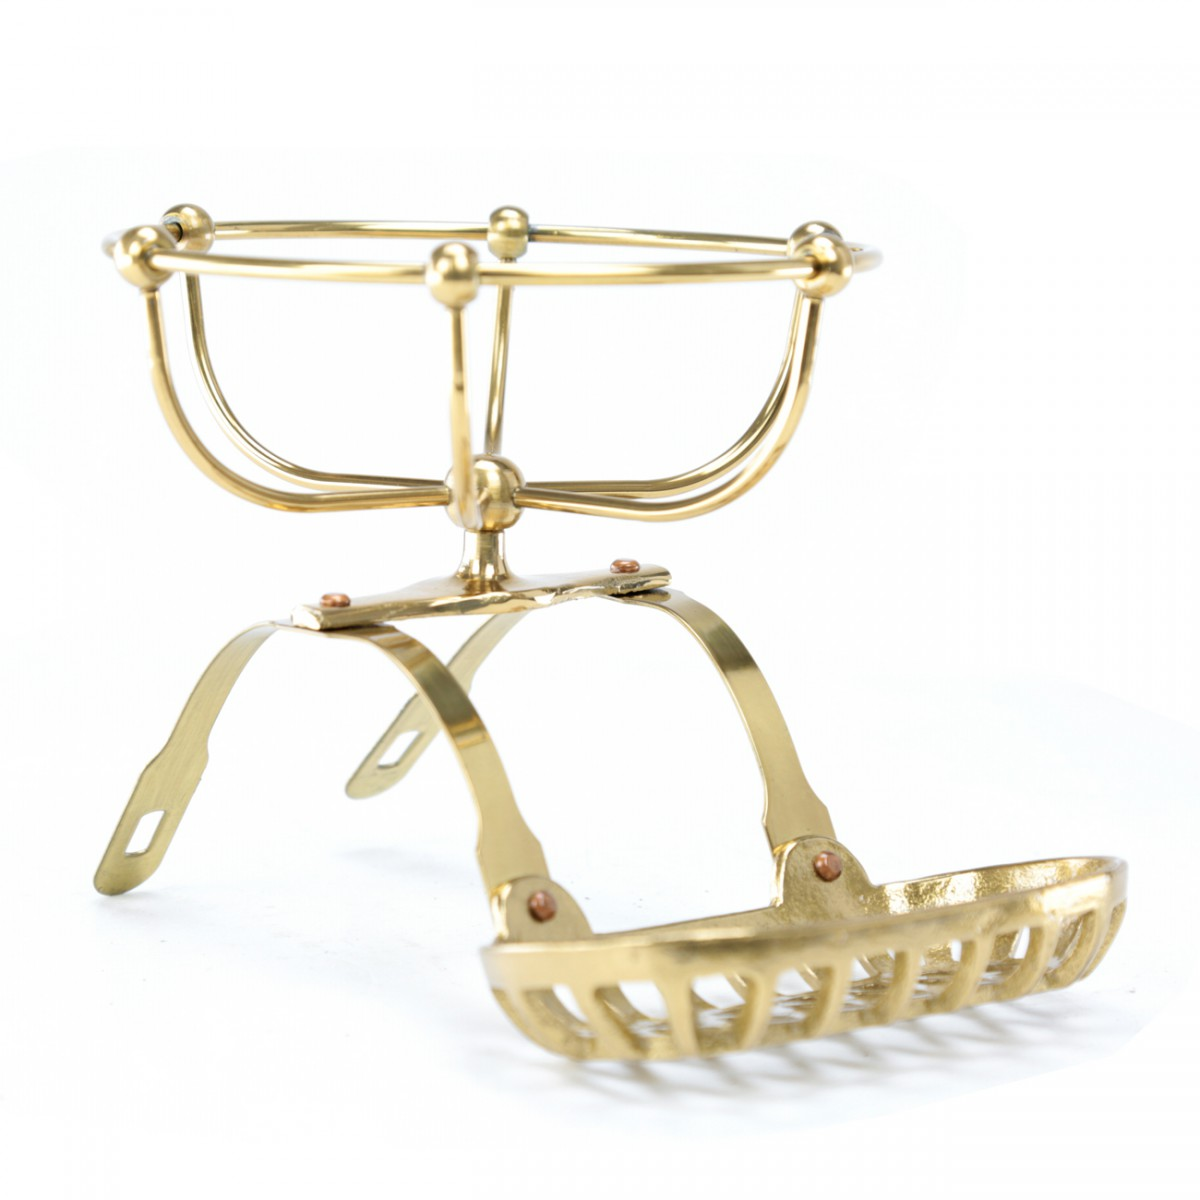 Vintage Clawfoot Tub Soap Dish Sponge Holder Brass Vintage Brass Finish